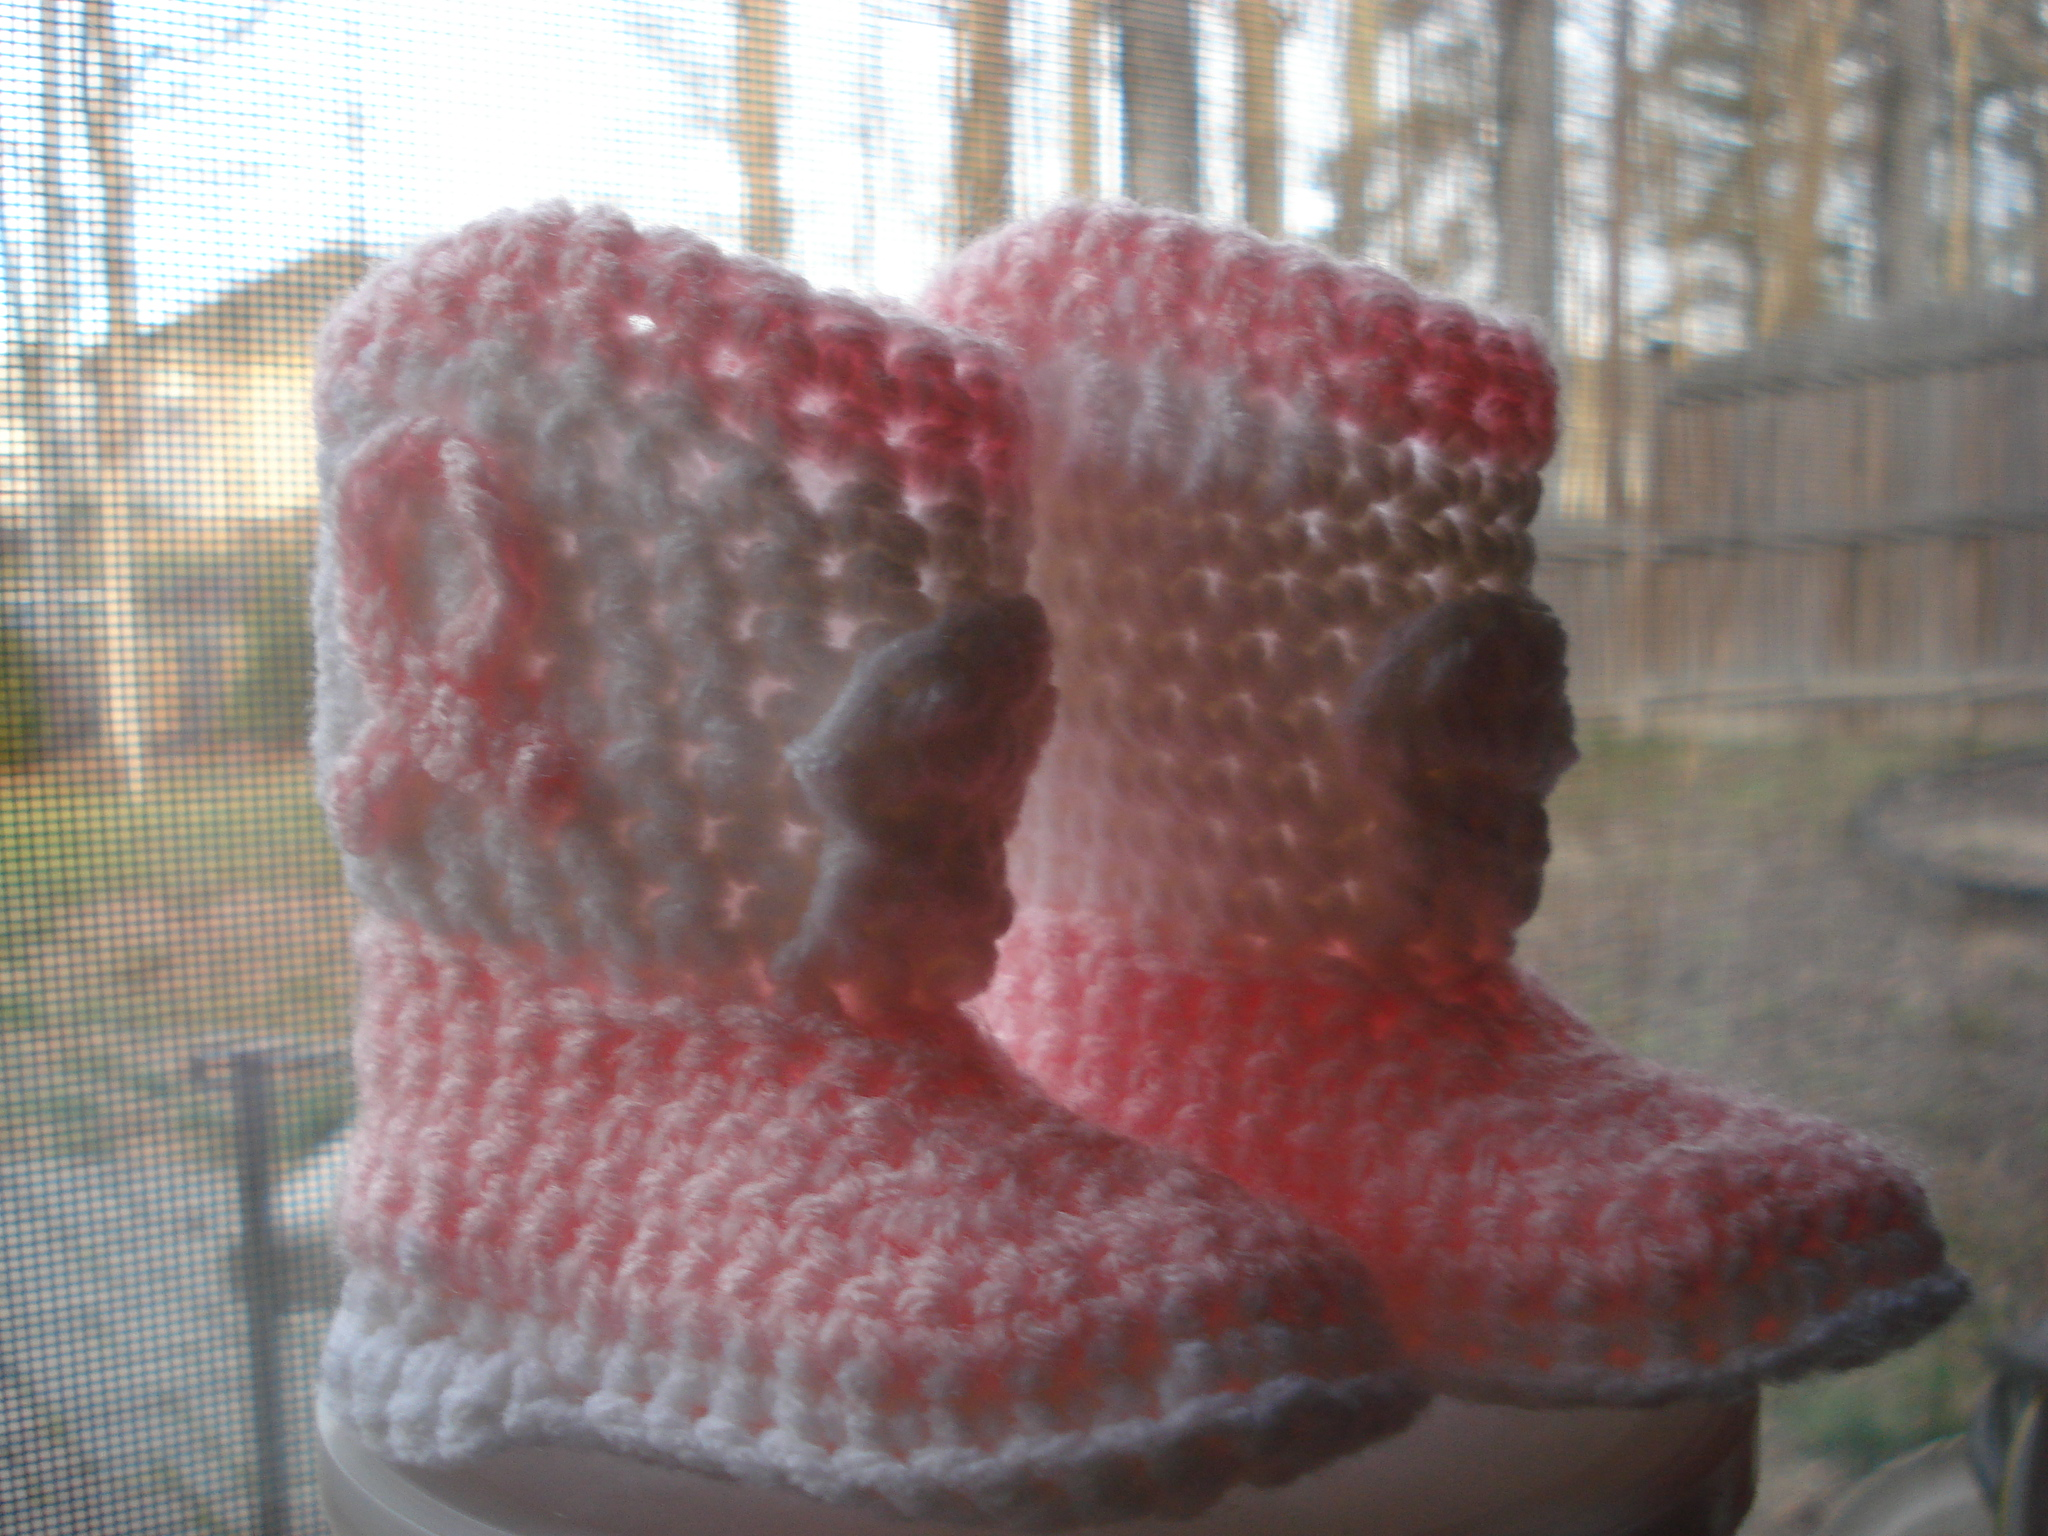 Crochet Free Patterns Boots : Free Pattern for Crochet Baby Cowboy Boots....Birdbug ...